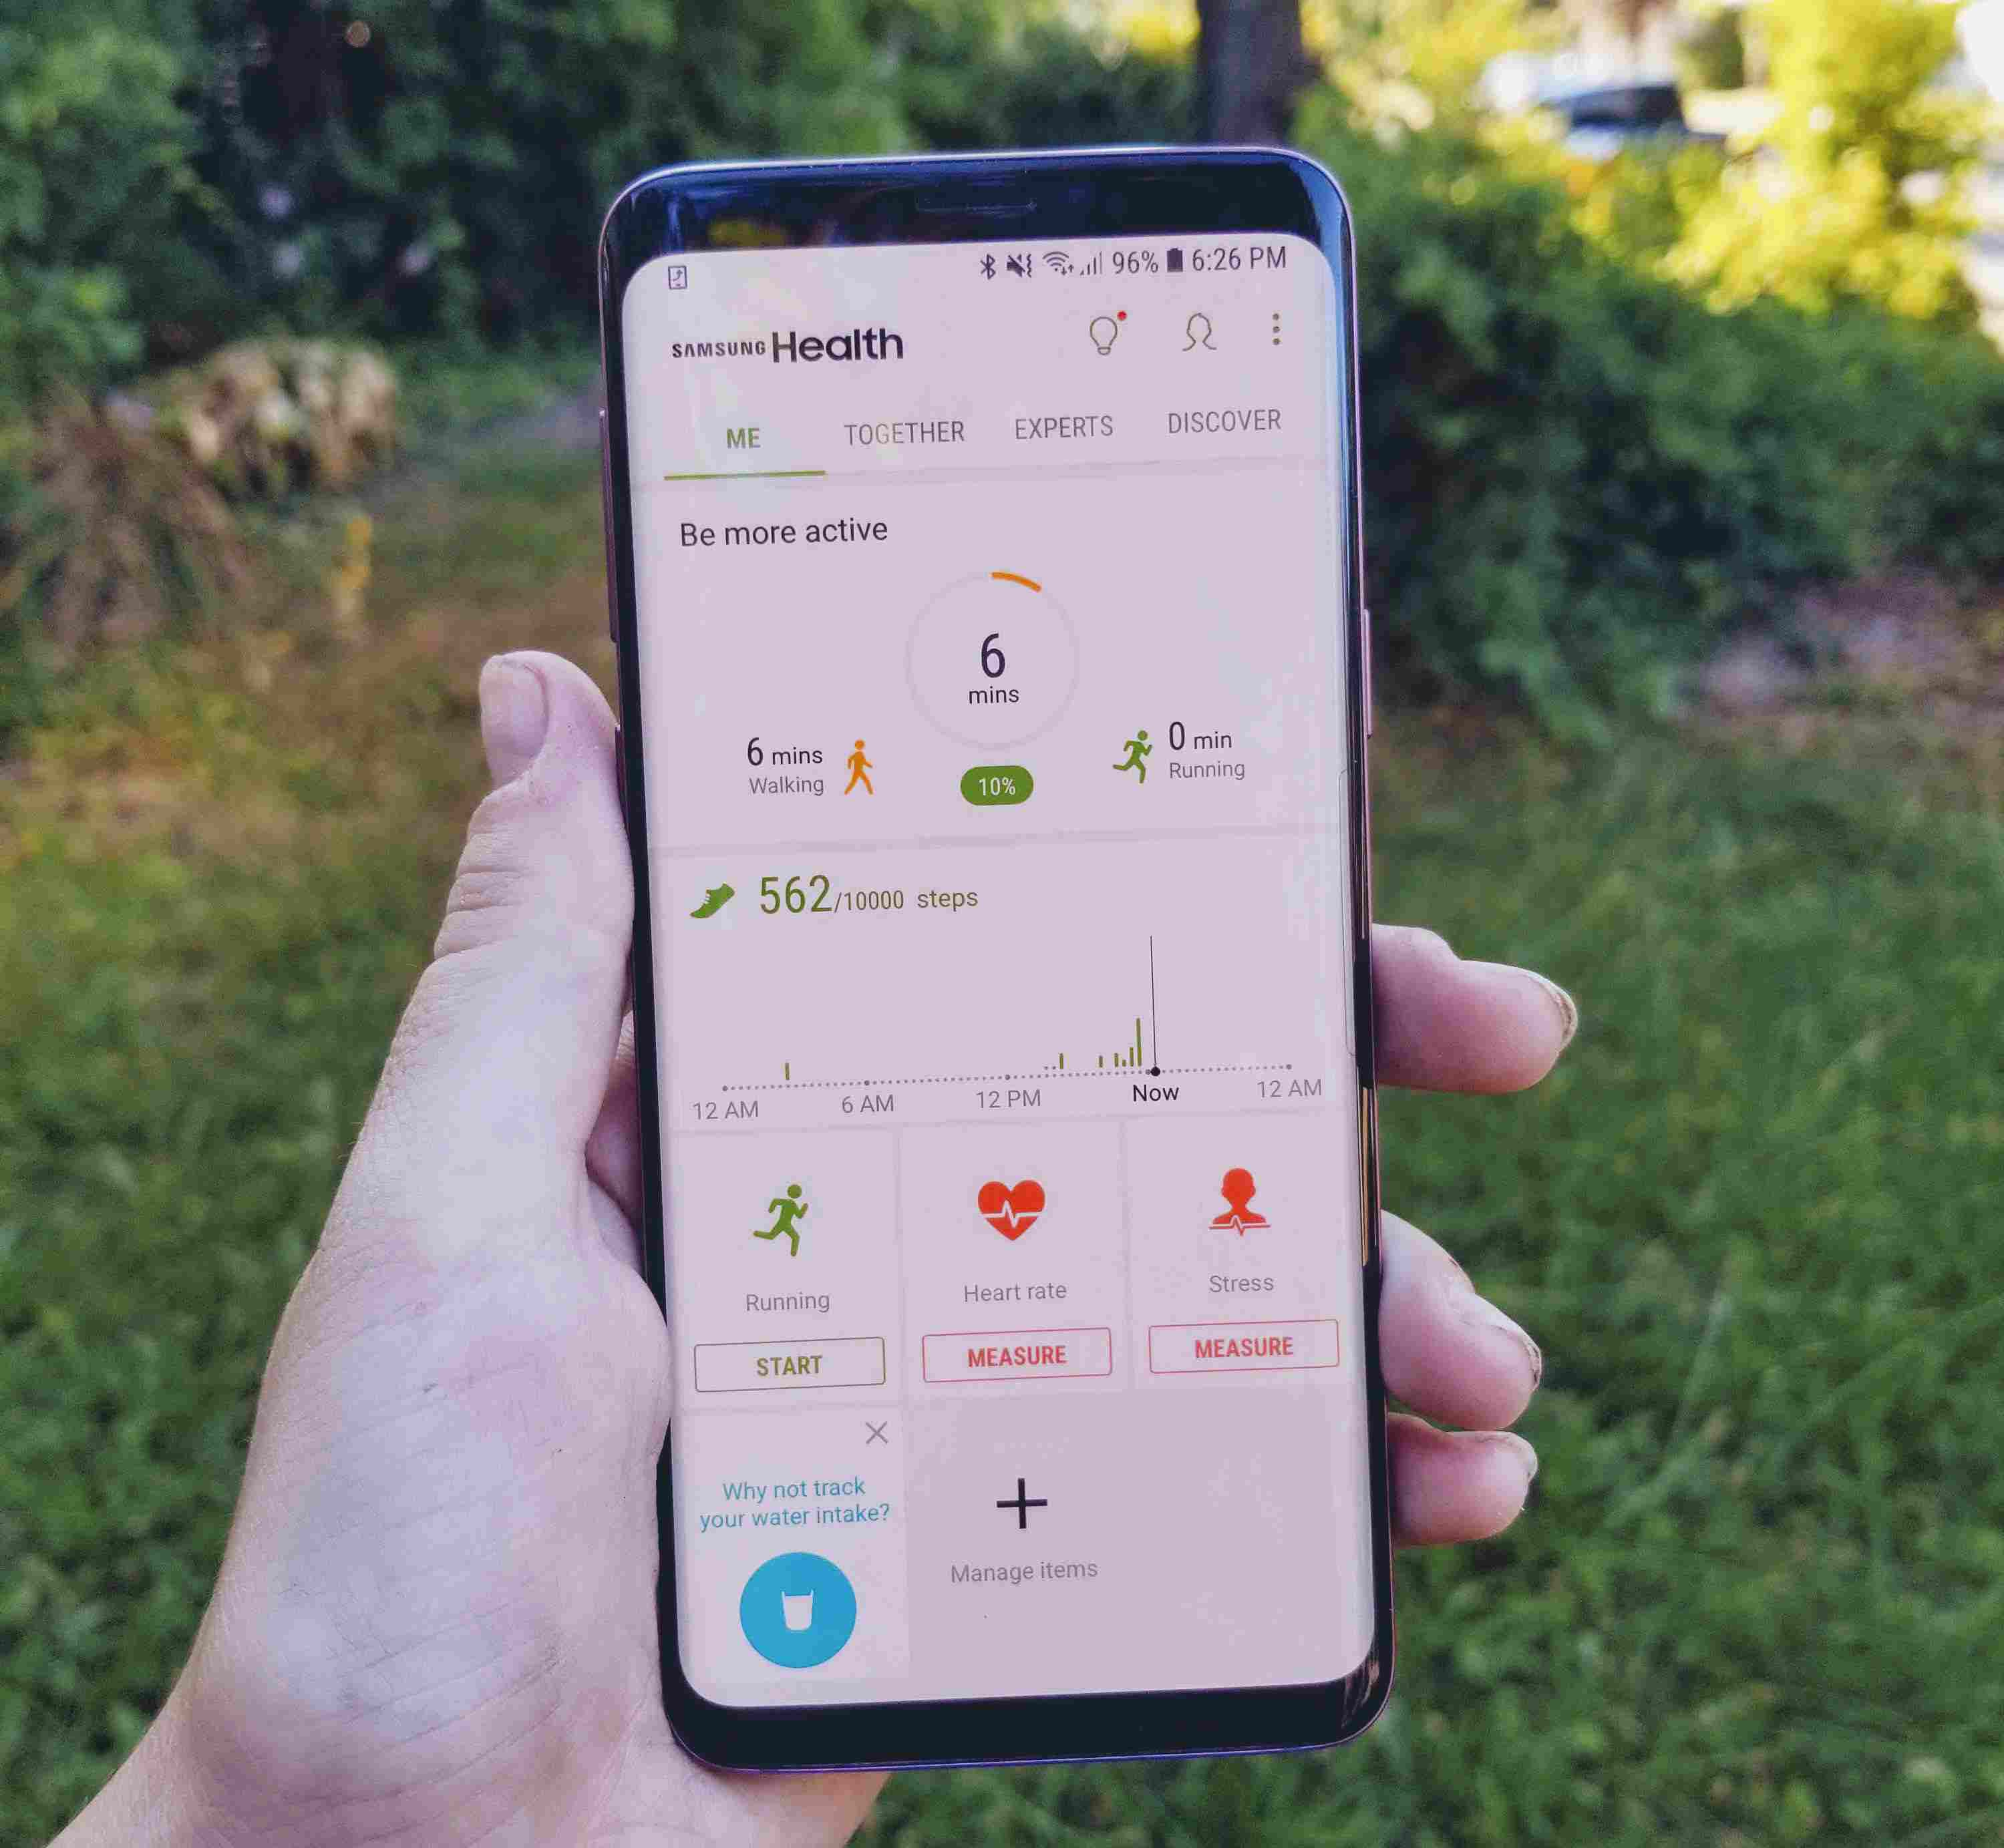 Samsung Health: How It Works